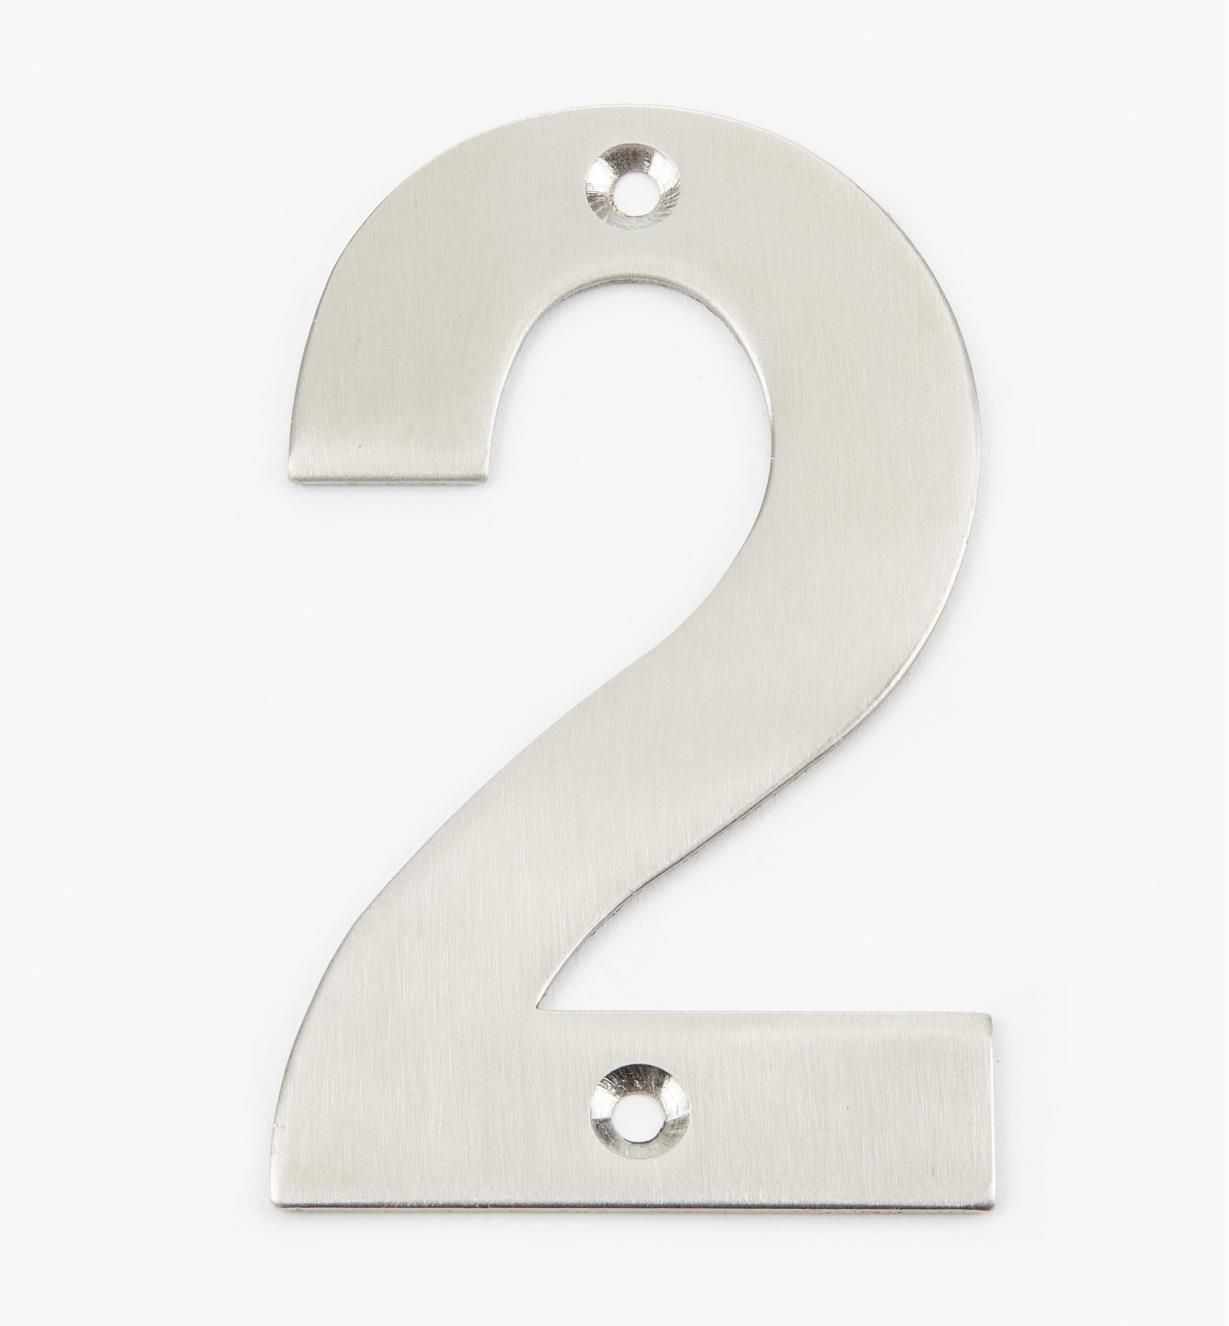 00W0882 - 100mm Stainless-Steel House Number - 2